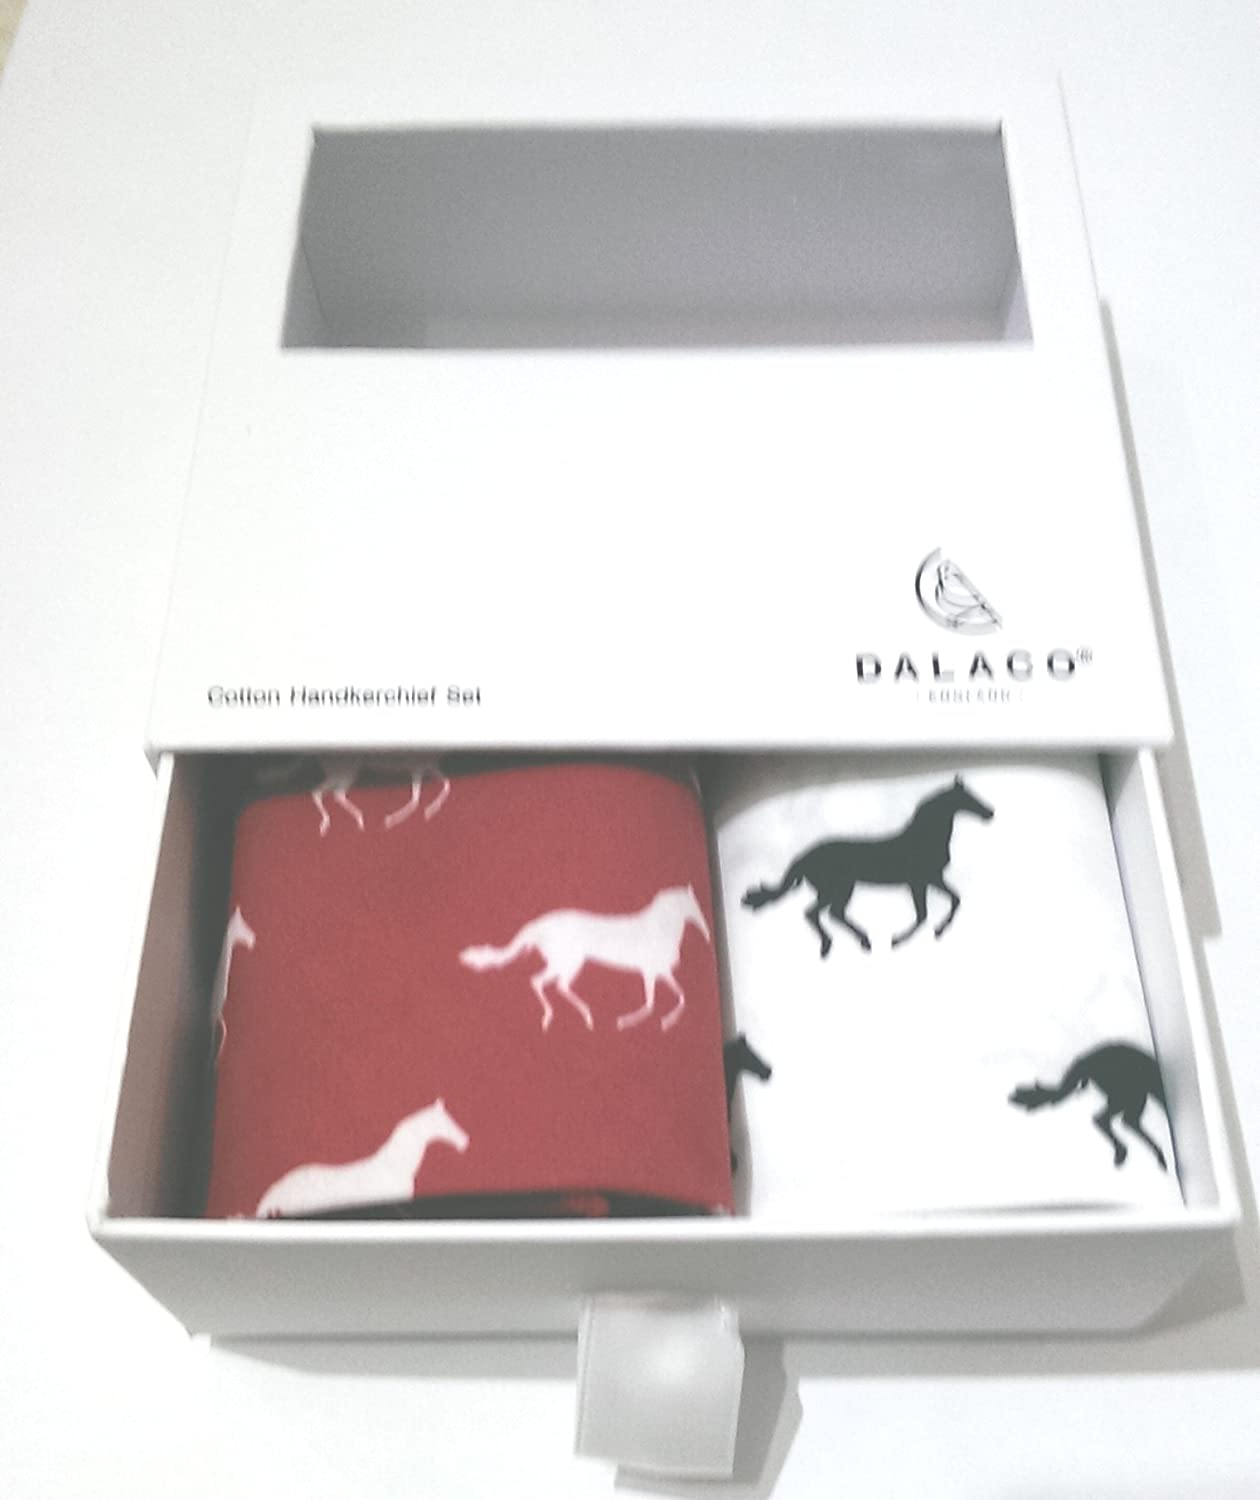 Set of 2 cotton handkerchiefs in a lovely drawer box, one each of red and white - with prints of horses galloping Farm Cottage Brands